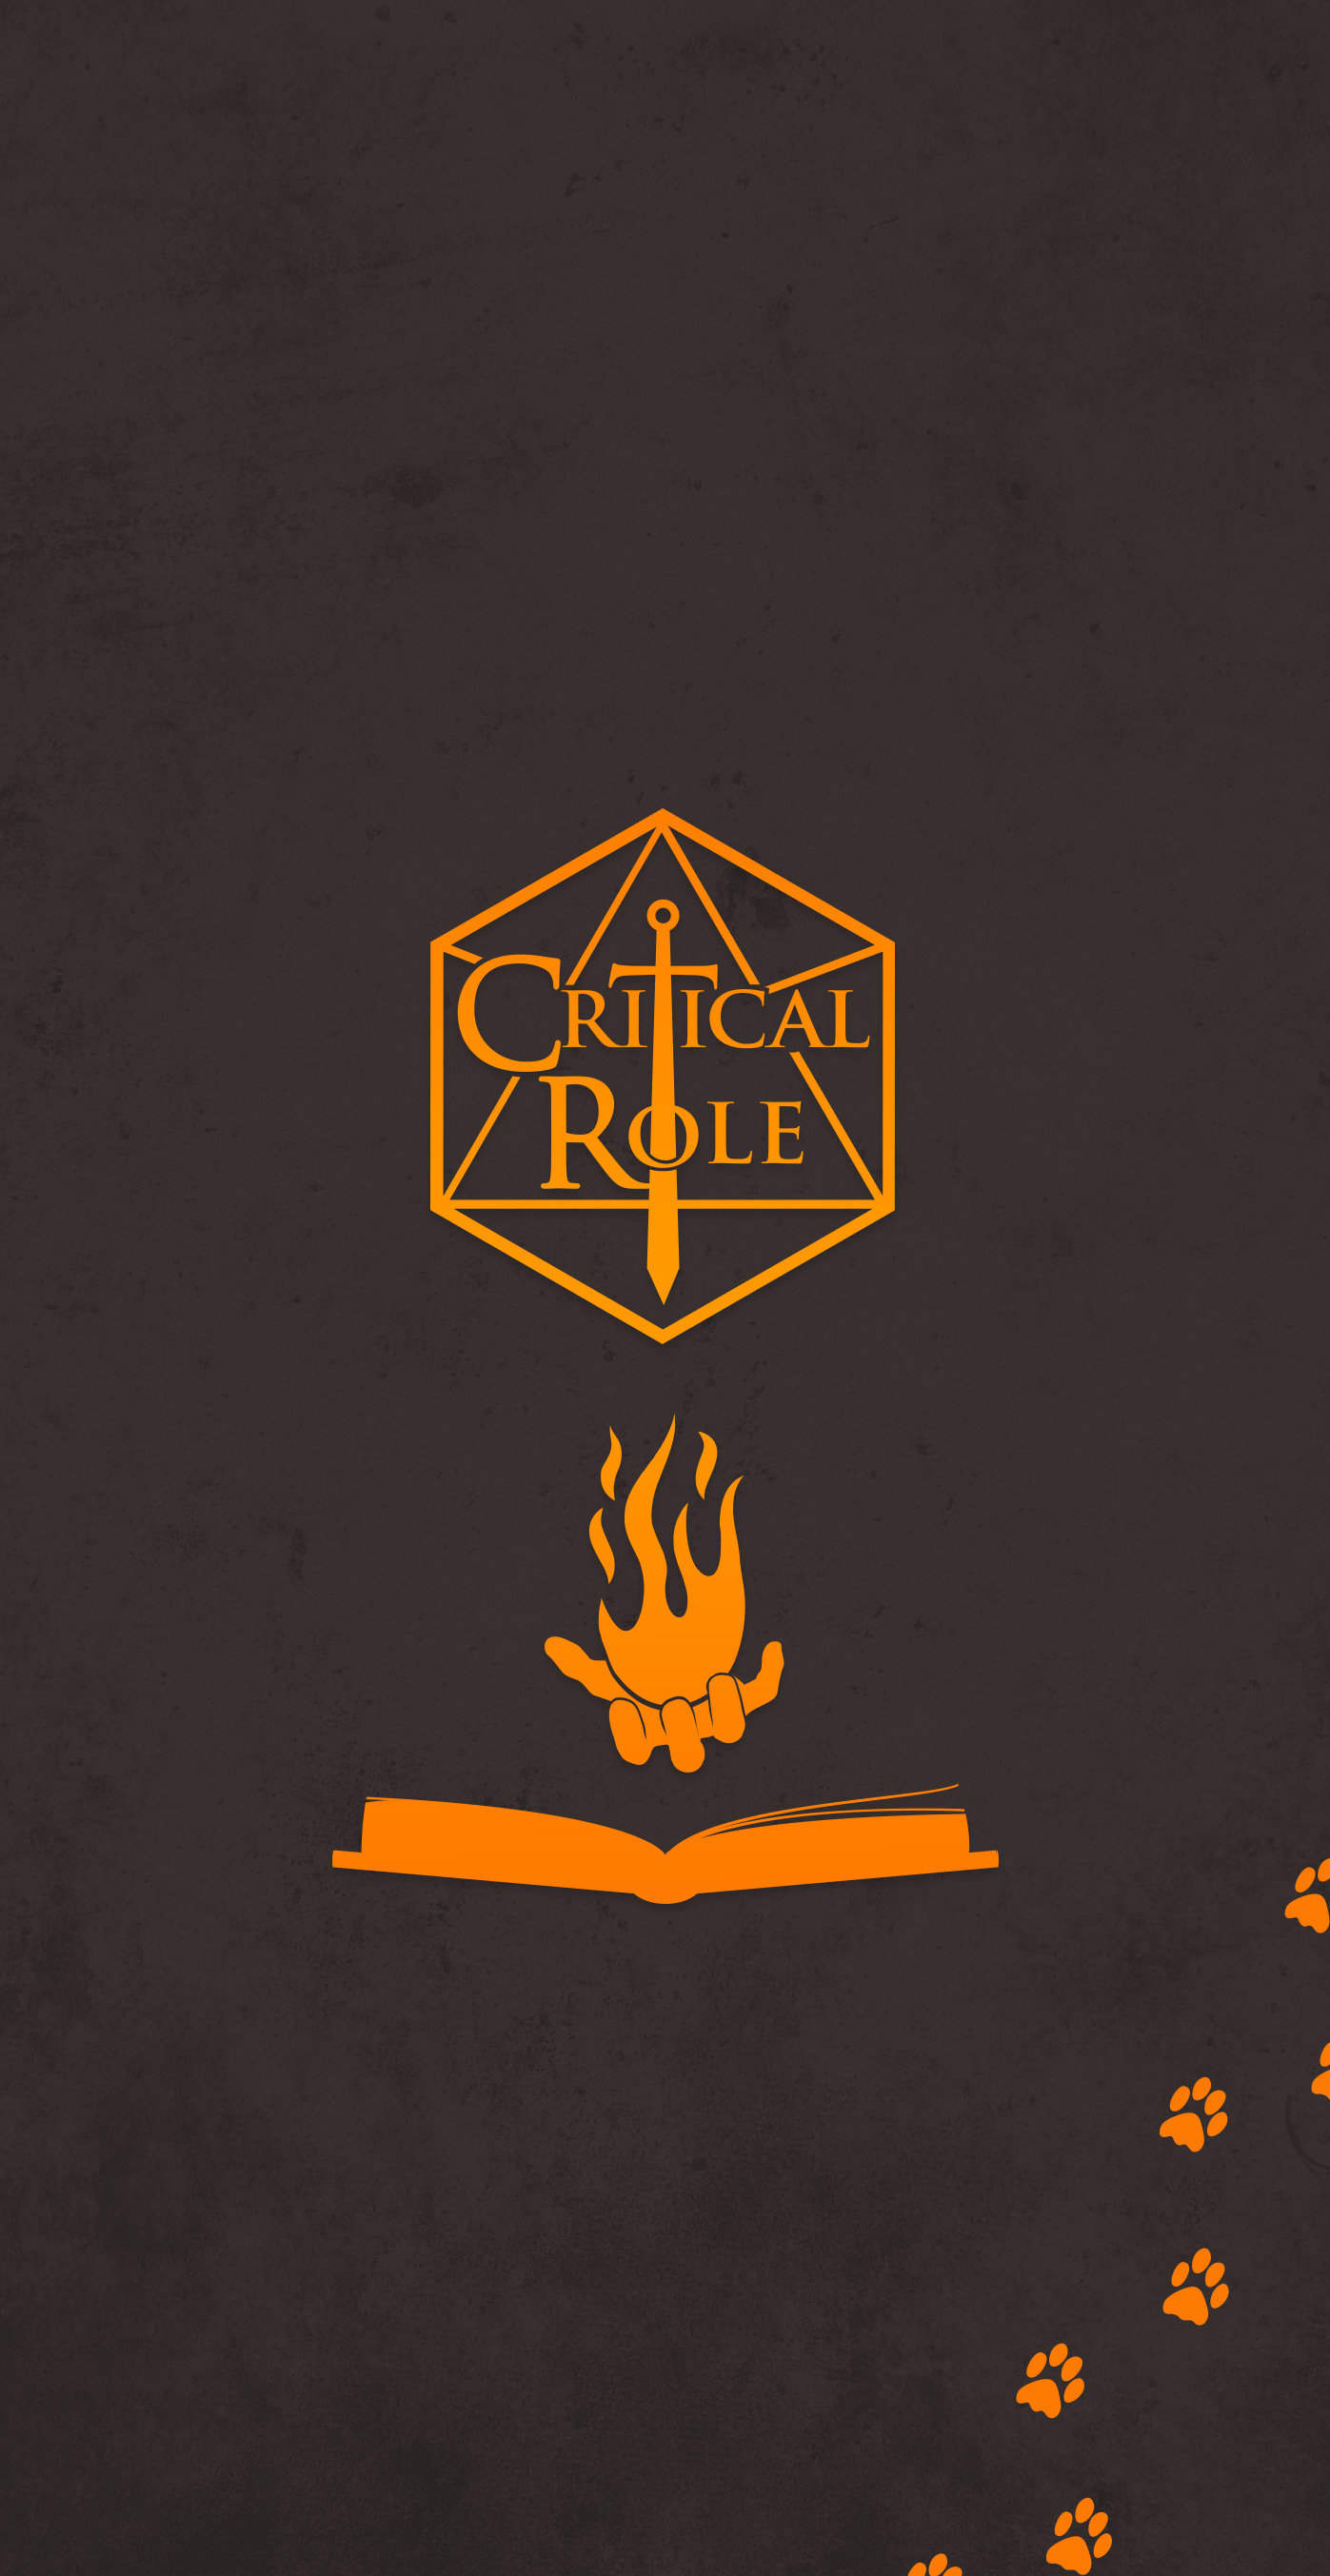 Critical Role Phone Wallpapers by @VividVisions